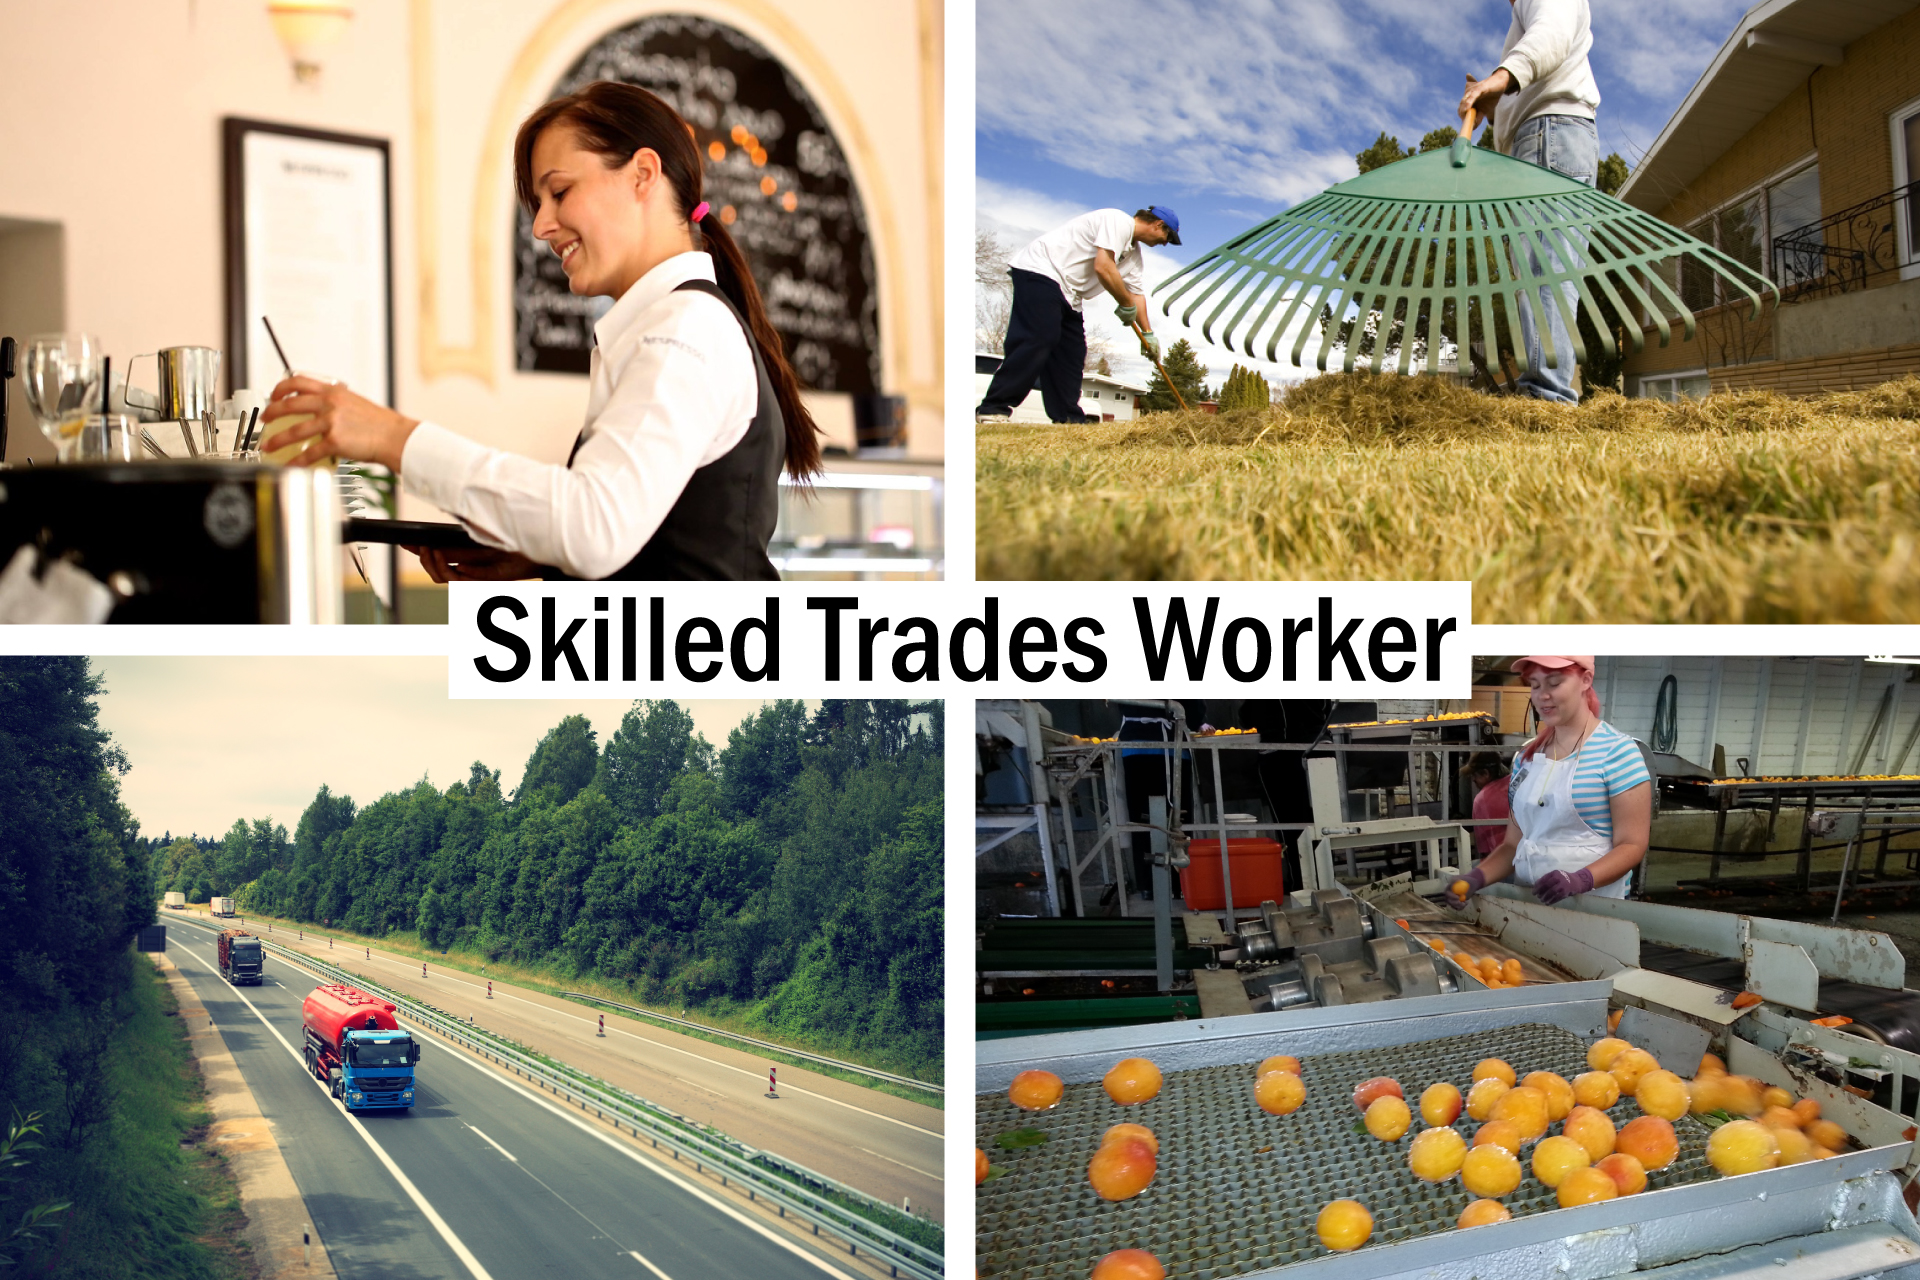 Skilled Trades Workers seeking to work in Canada